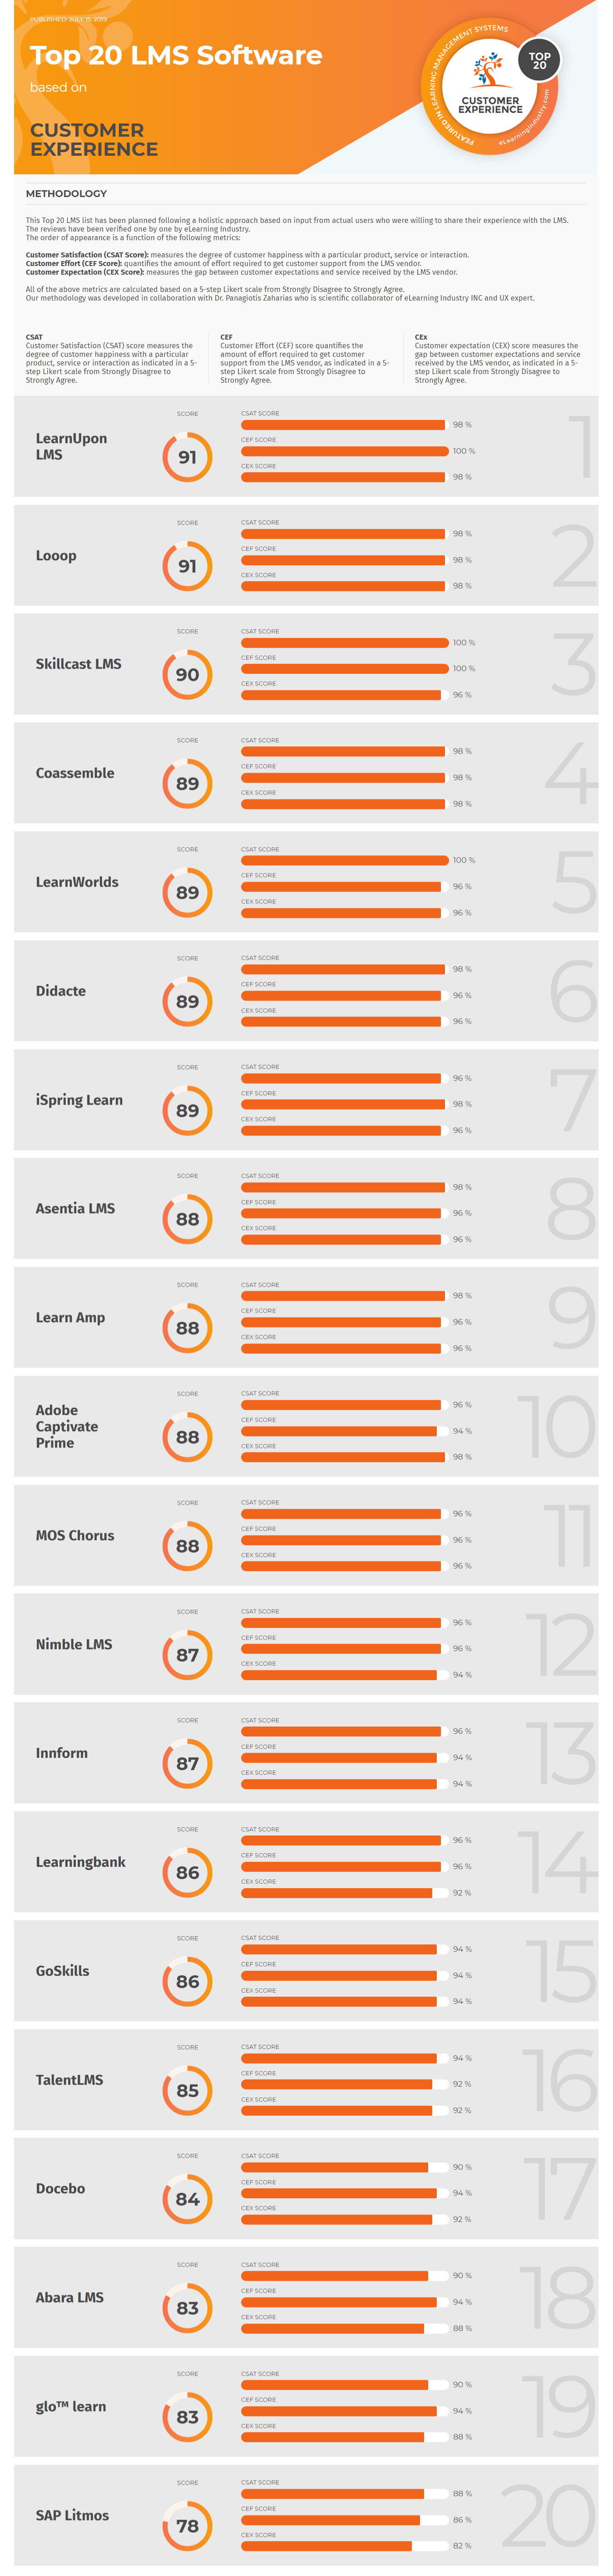 Top 20 LMS Software based on Customer Experience July 2019